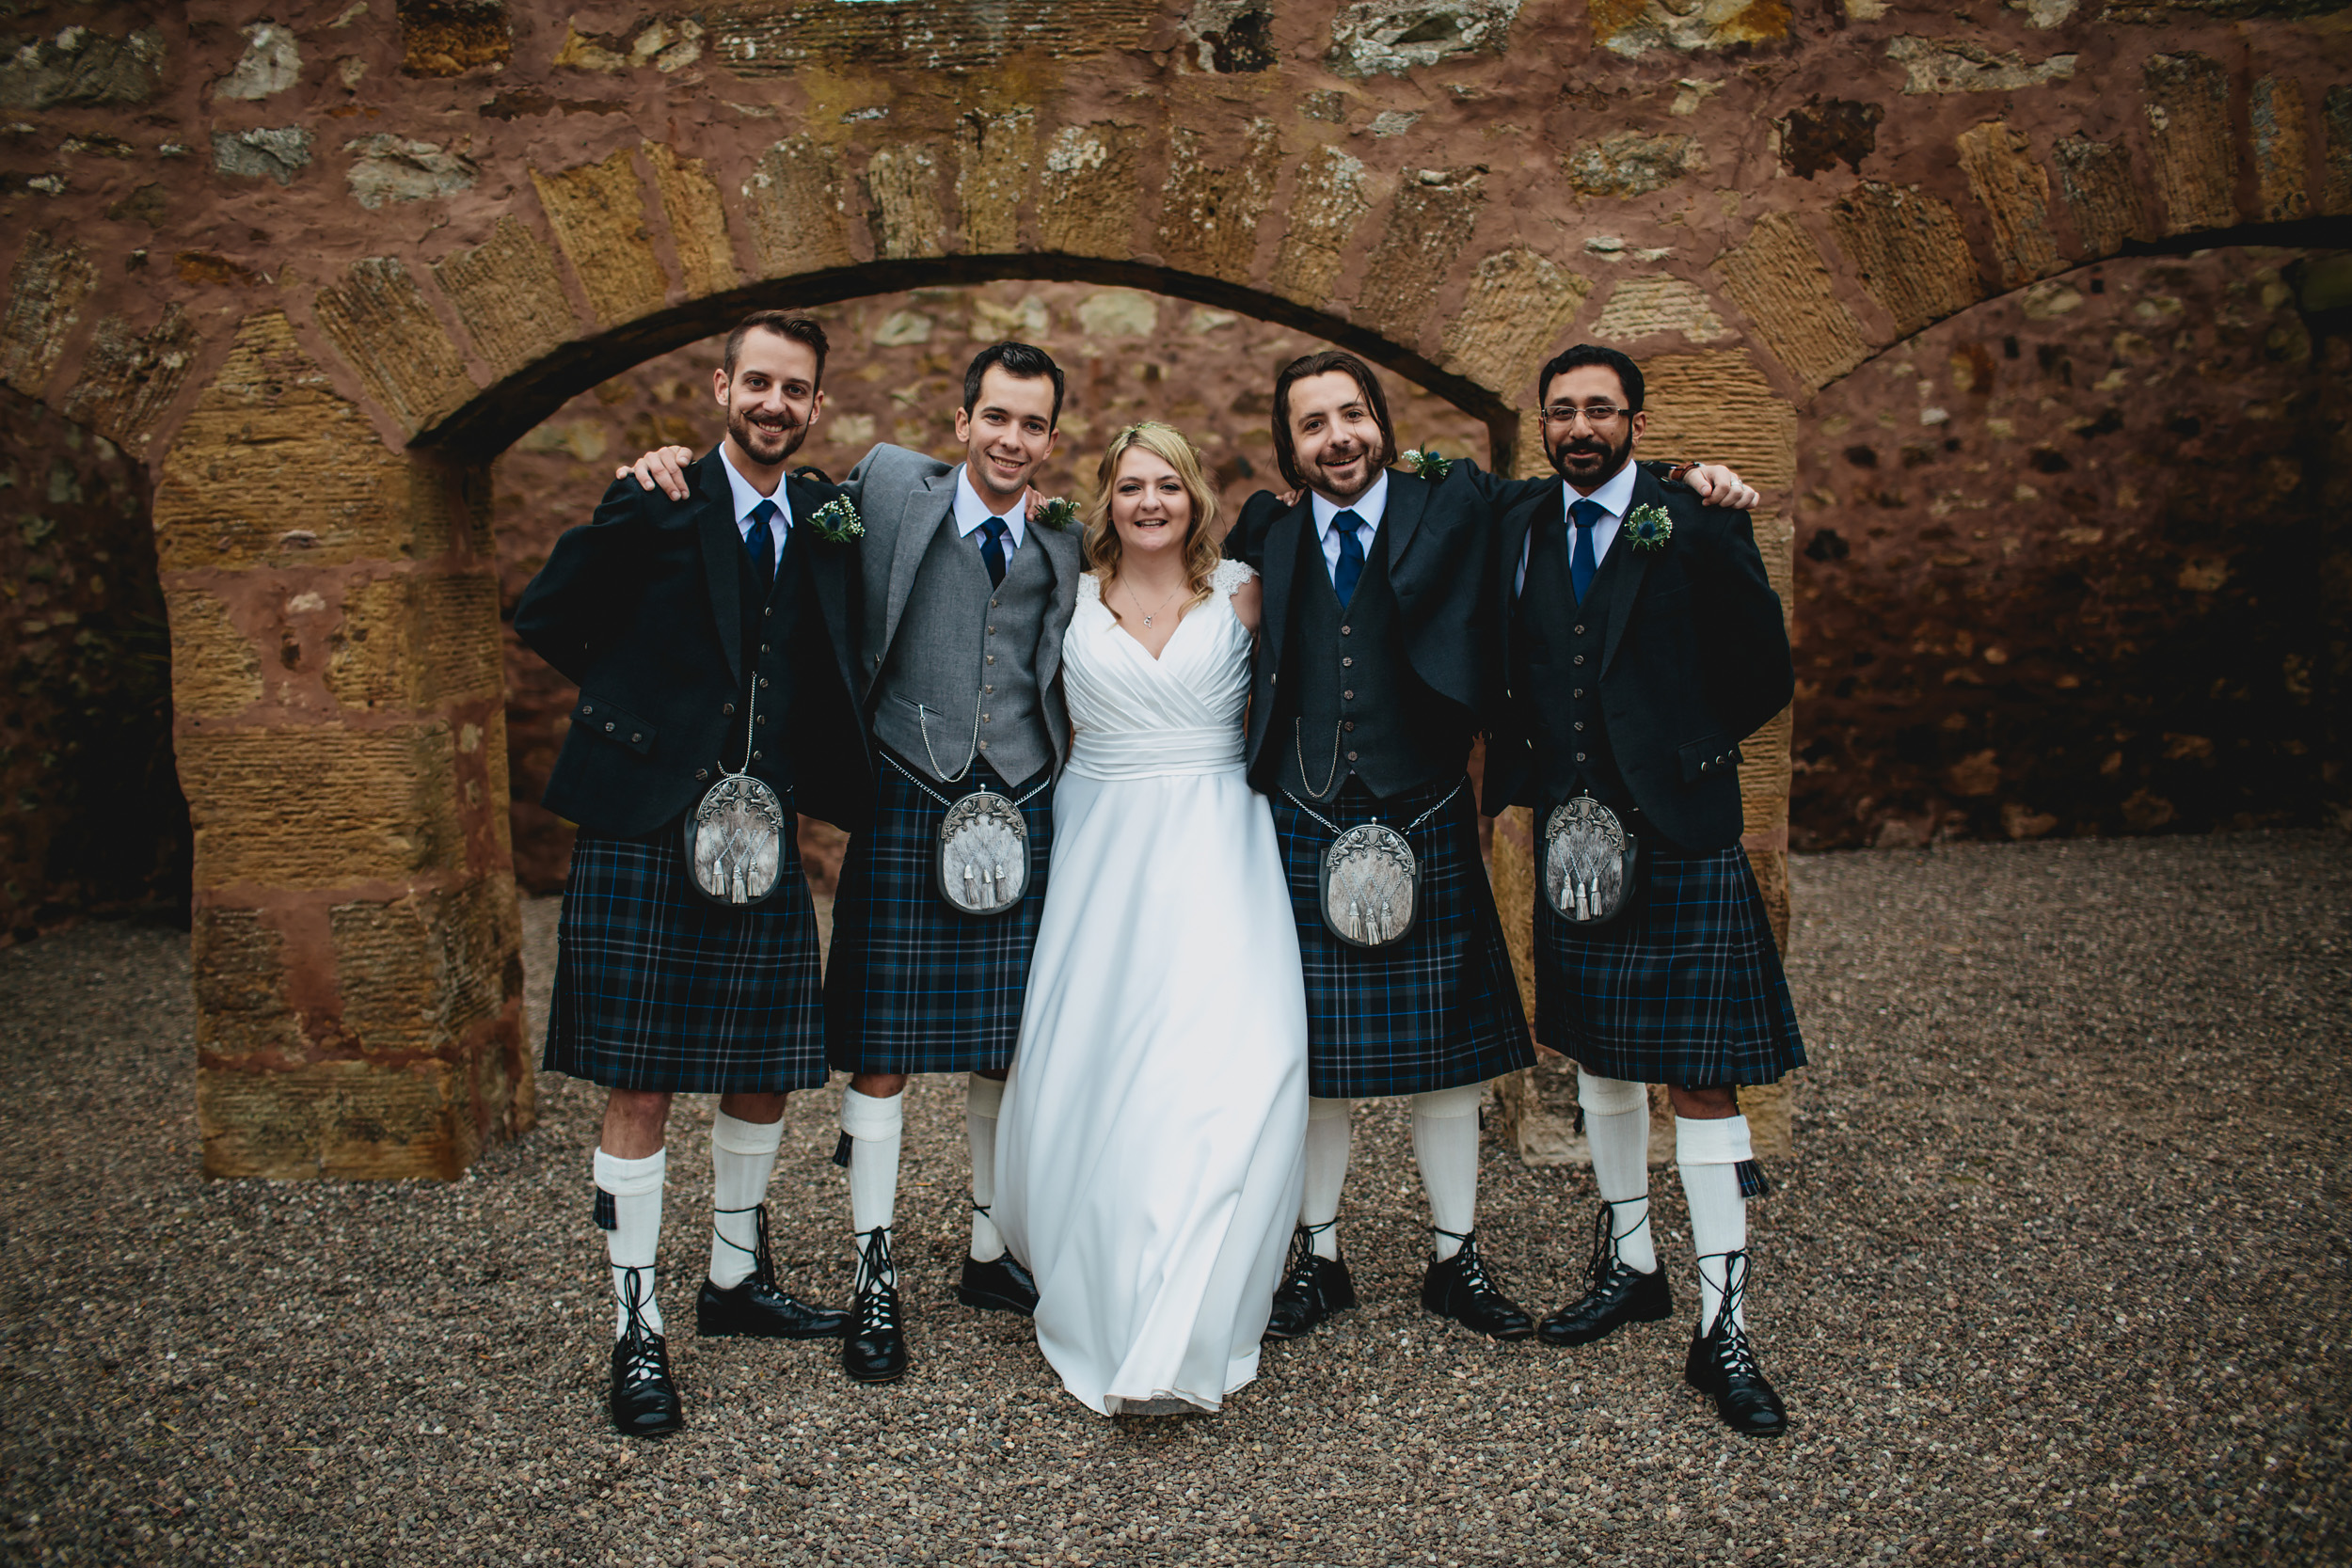 Wedding group shot in Scotland